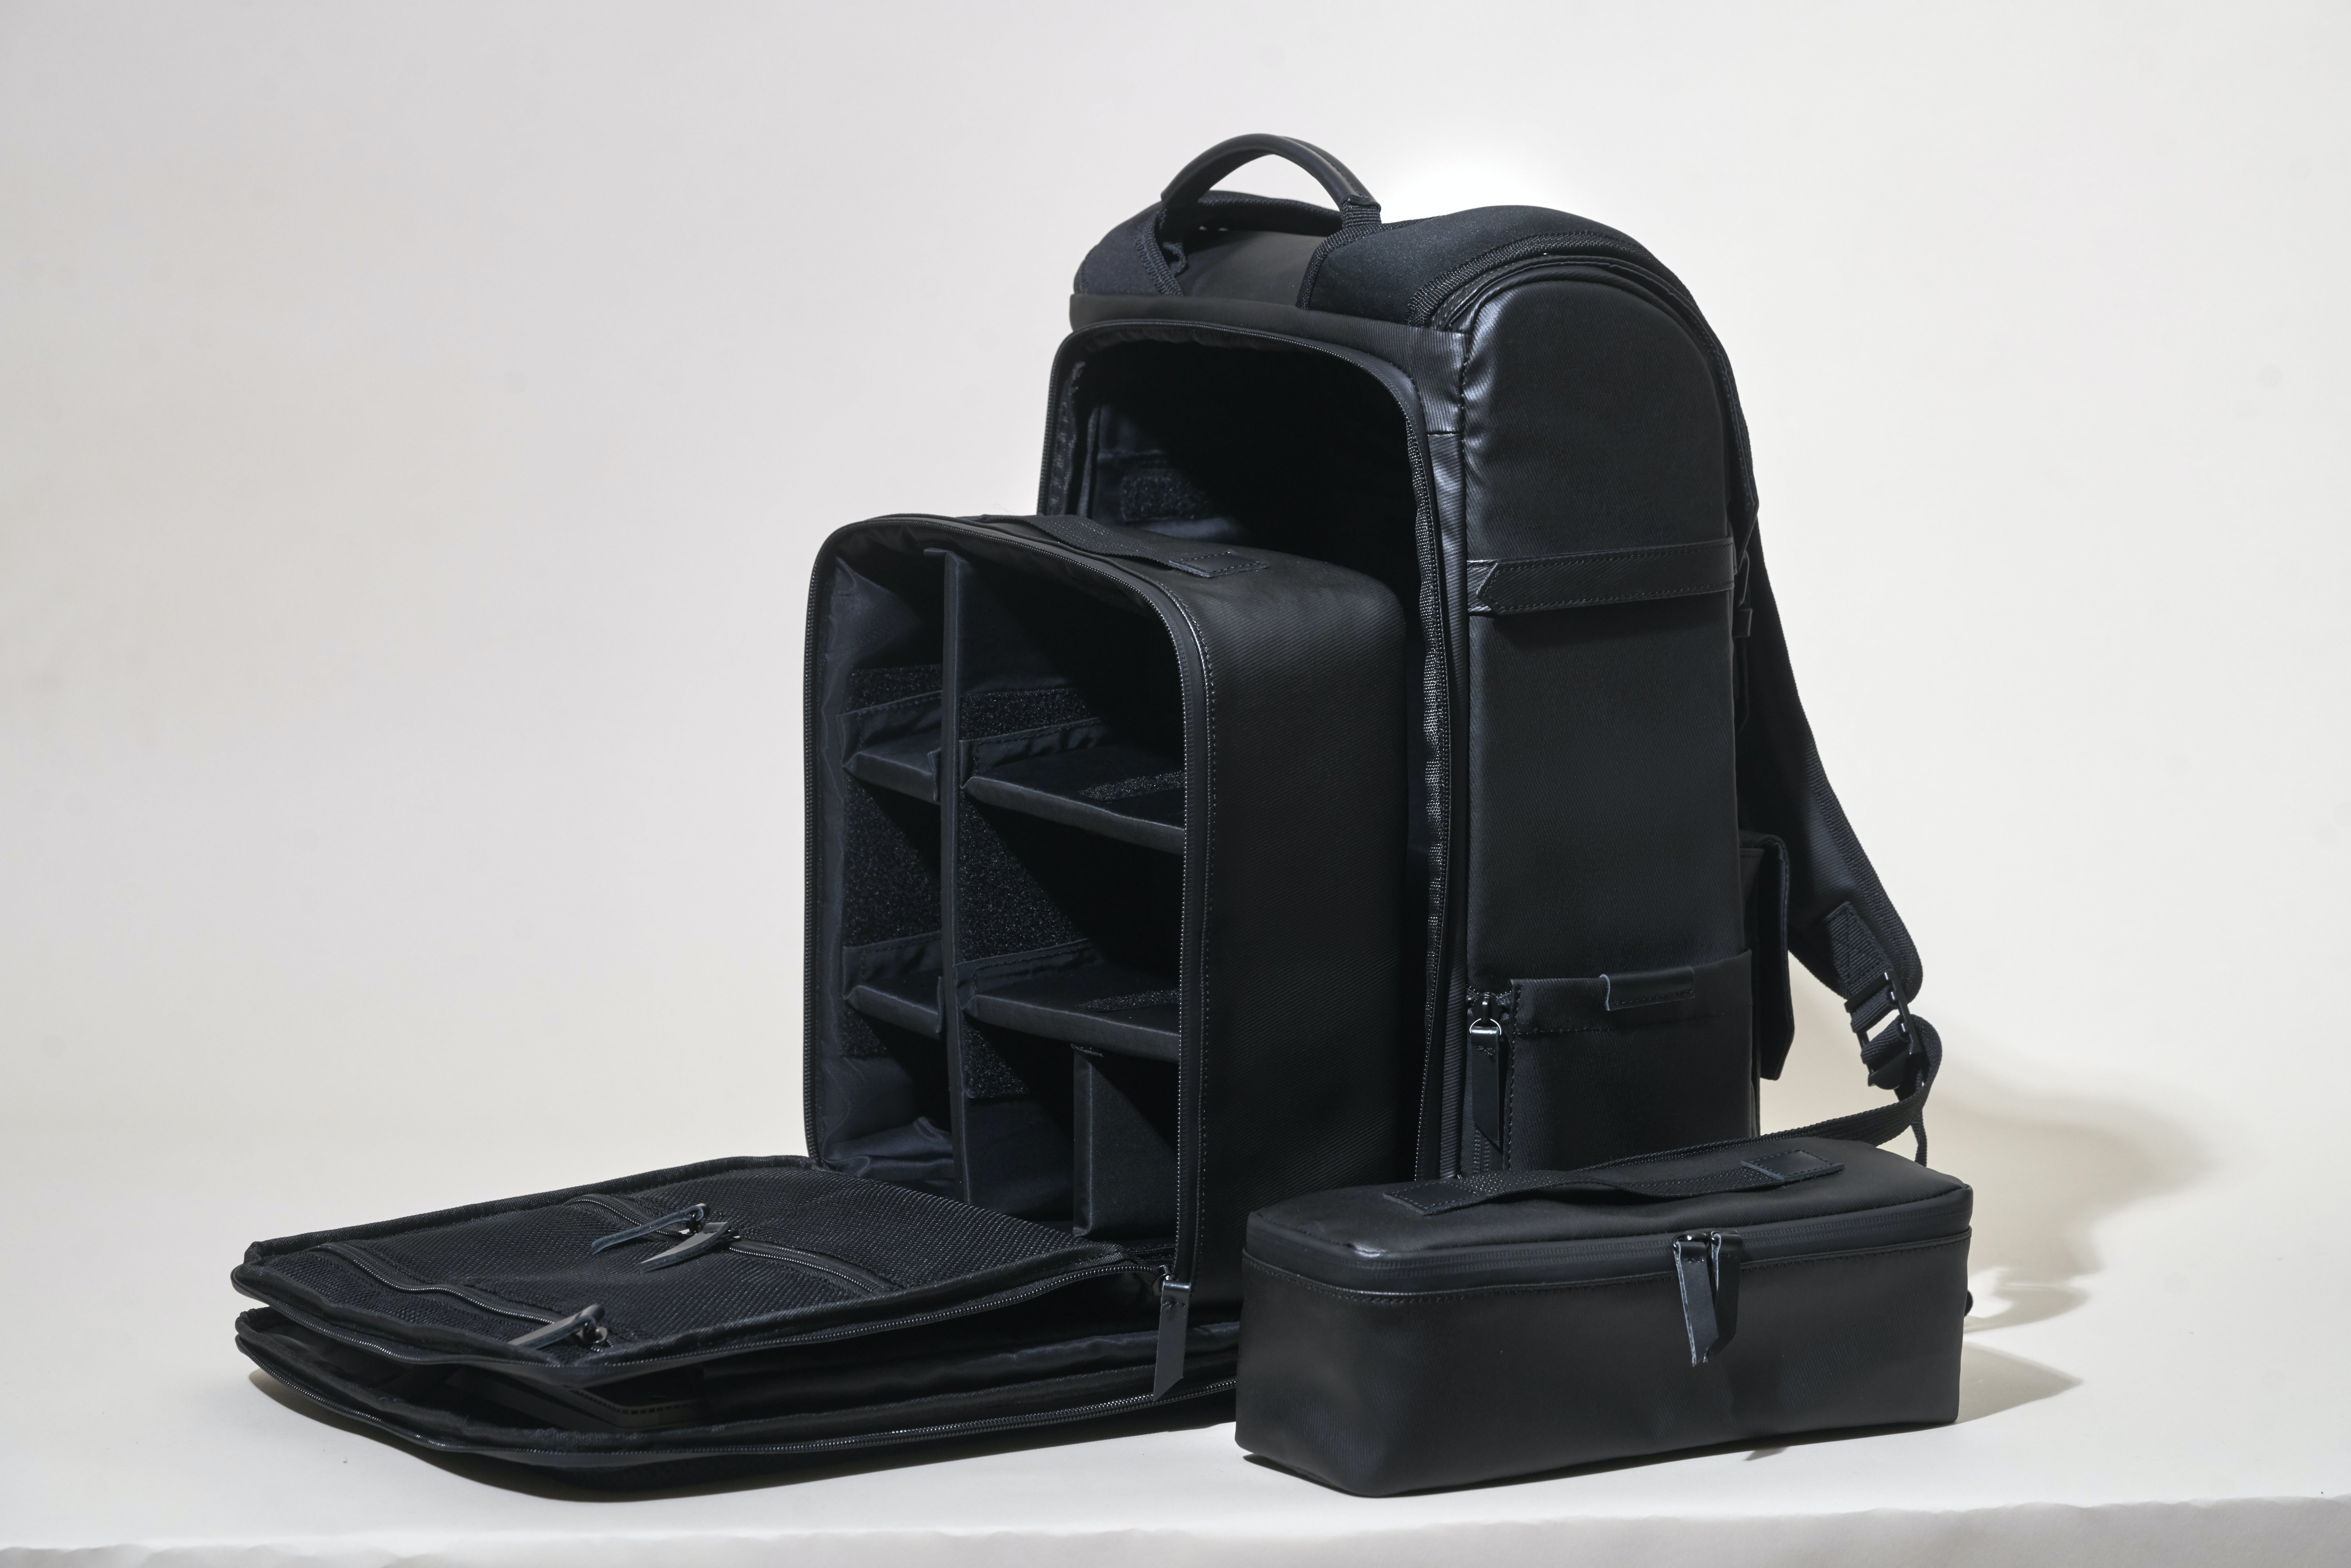 Black Organizer Bag Set